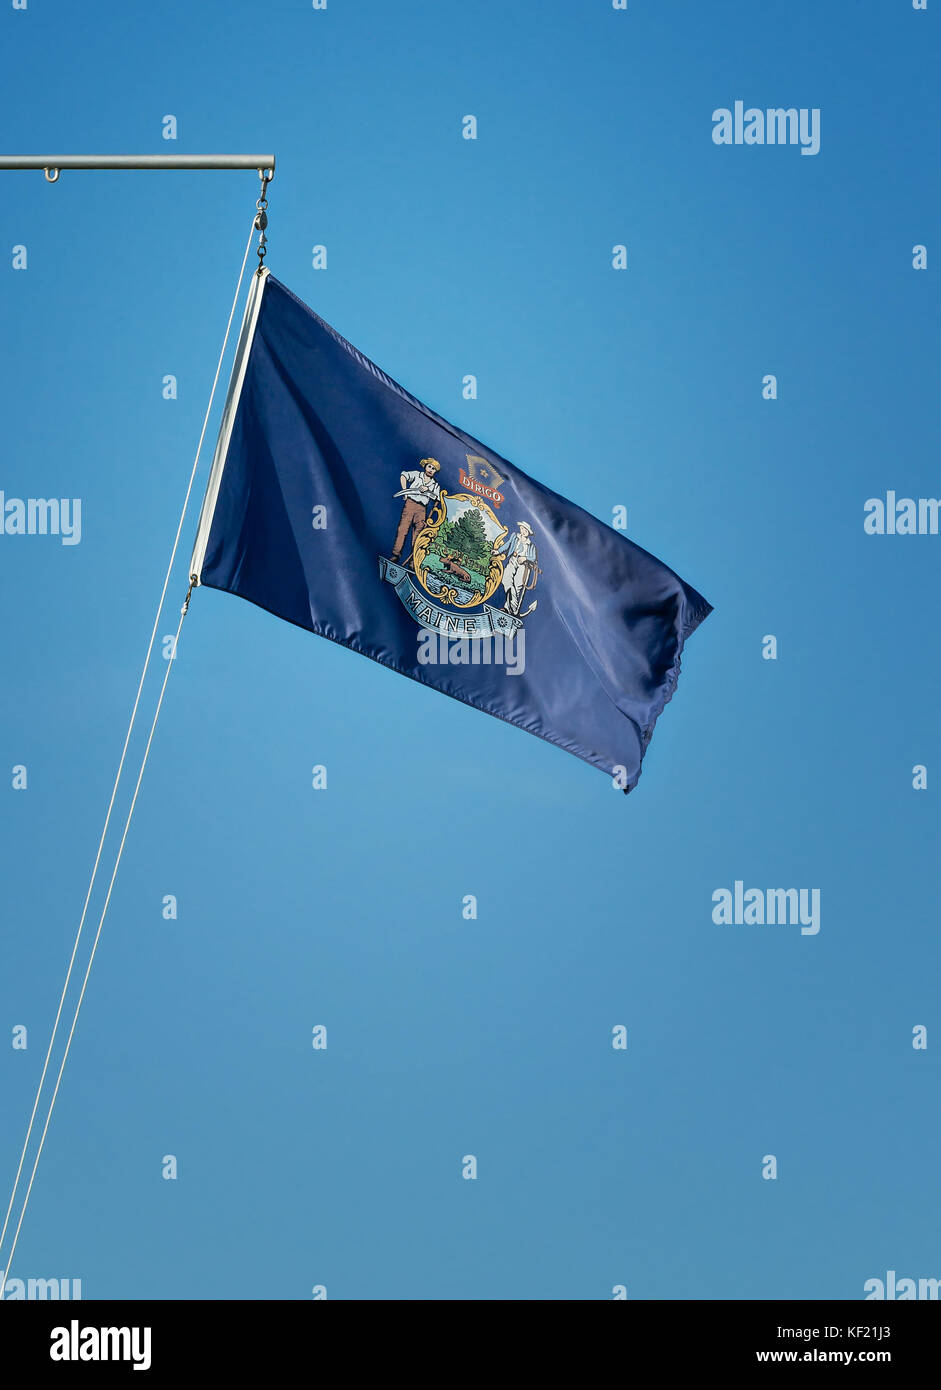 State flag of Maine waving in the wind on a flagpole. Blue sky background with copy space. - Stock Image